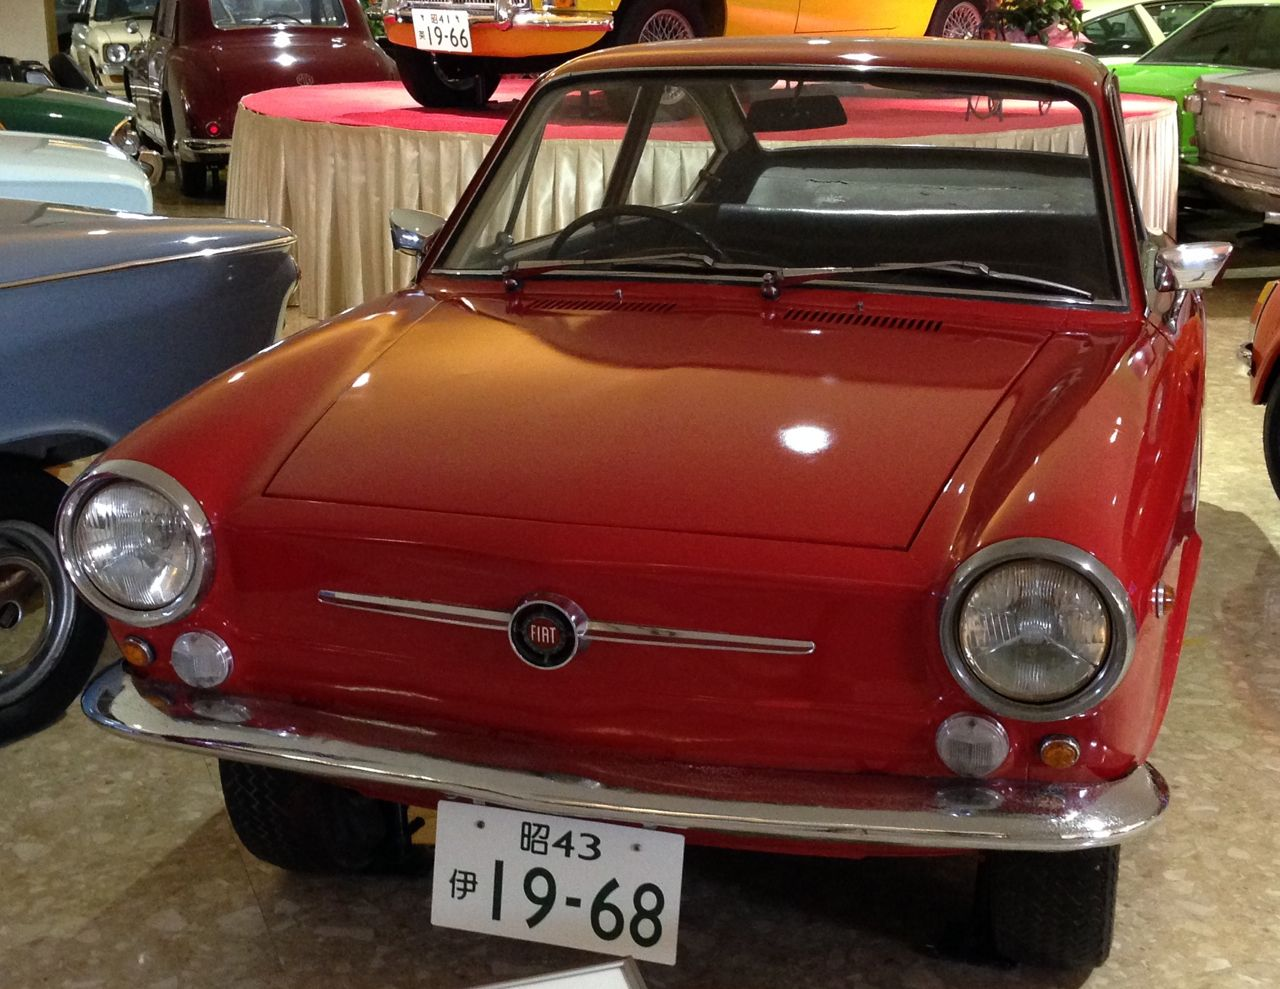 1968 Fiat 850 Coupe With Images Fiat 850 Japanese Cars Car